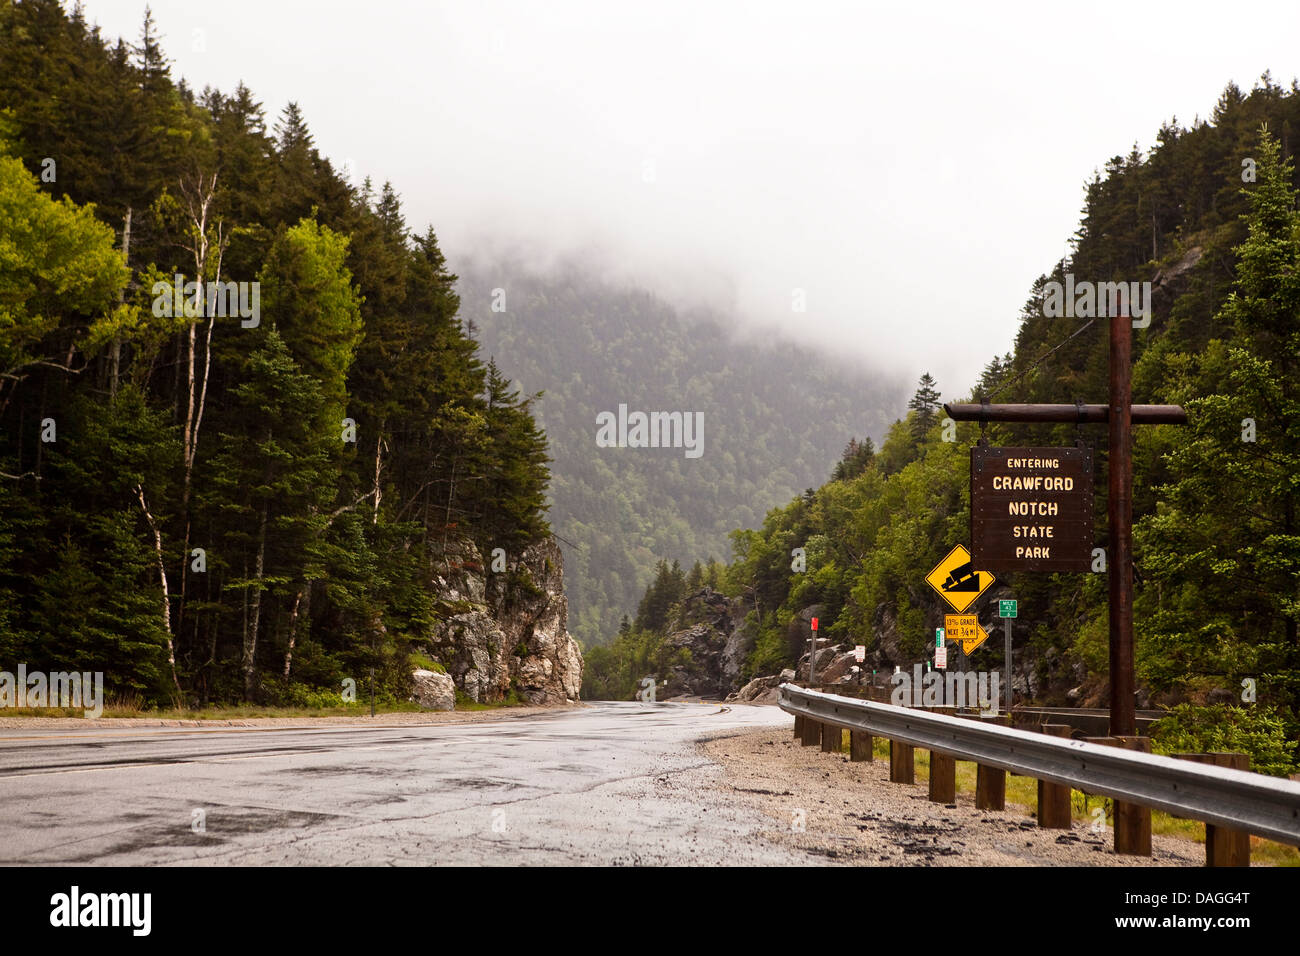 The Crawford Notch State Park is seen in New Hampshire Stock Photo